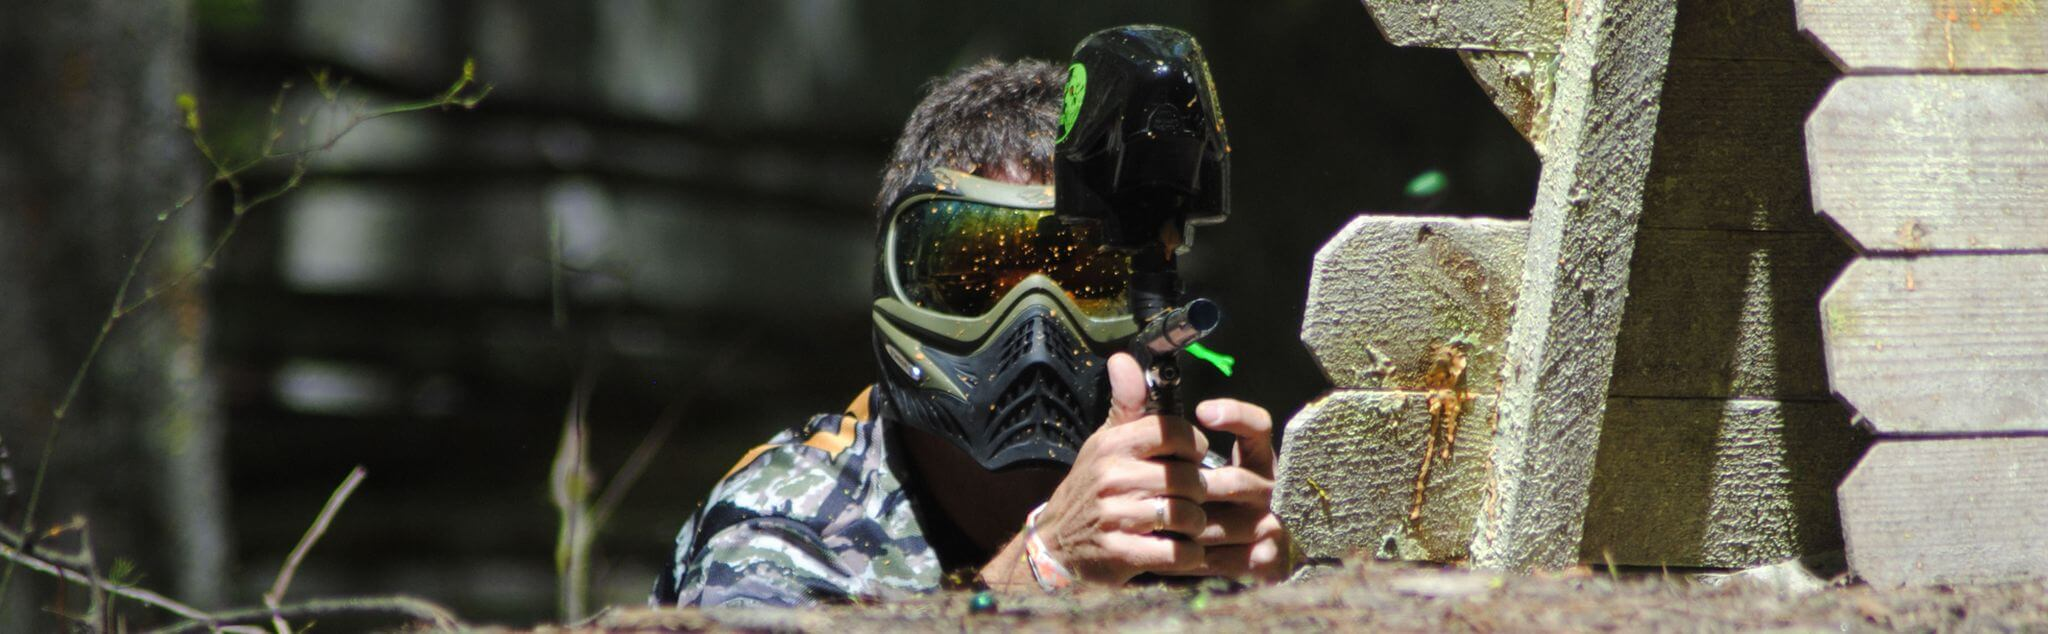 Paintball a Bari